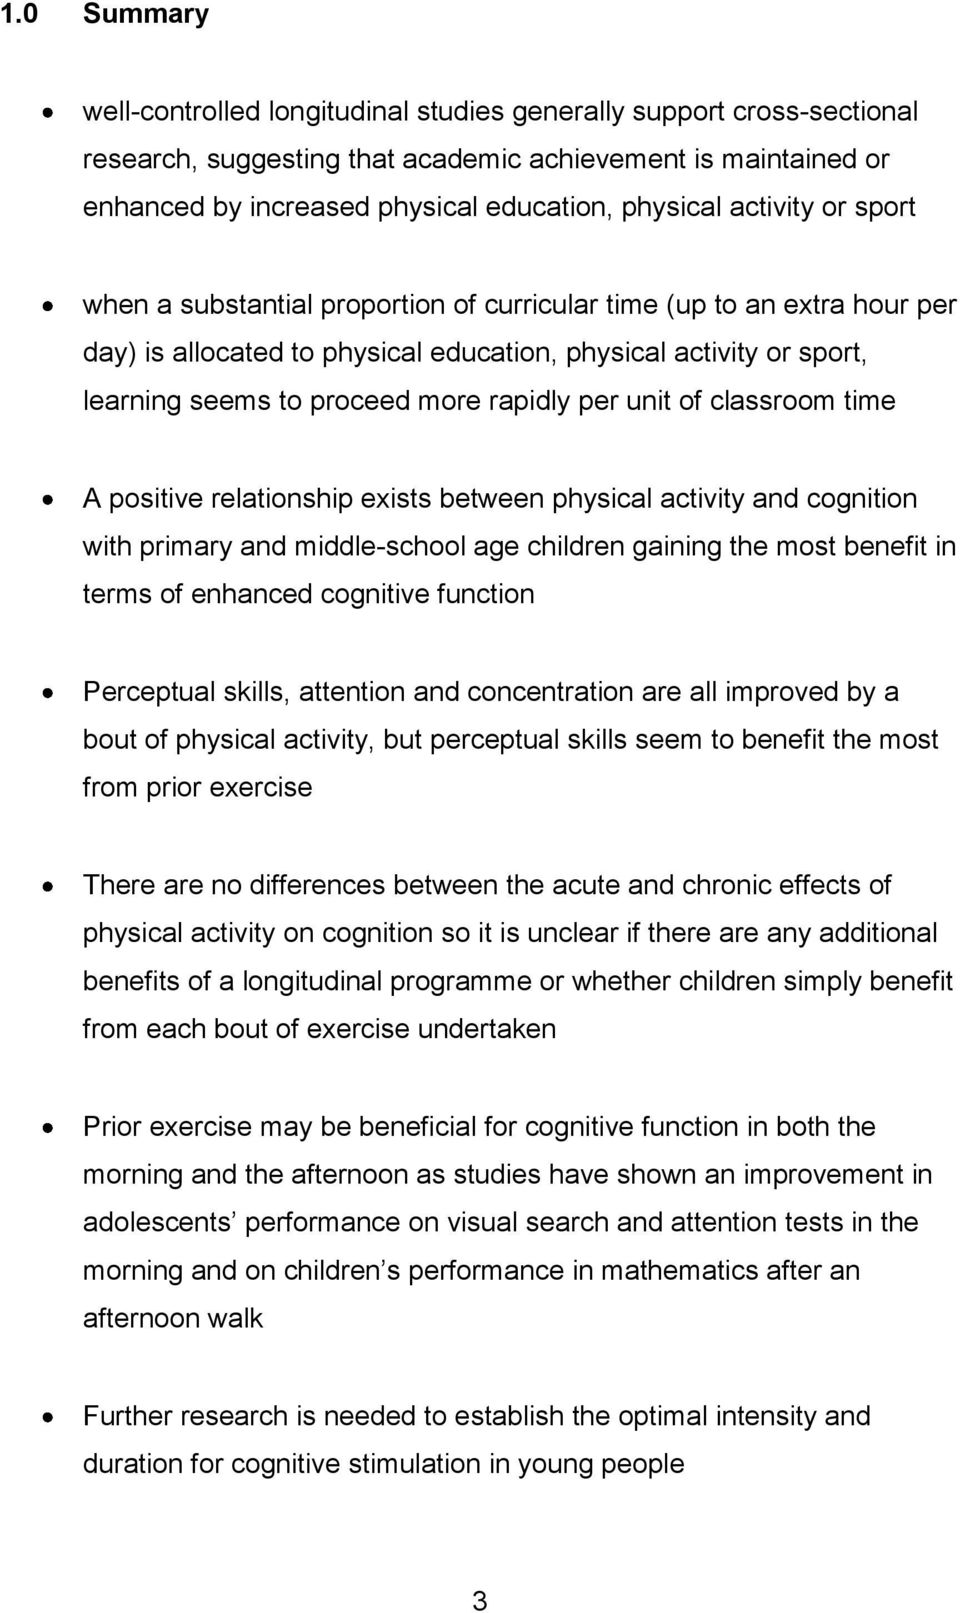 A research study on the correlation between physical activity and cognitive functioning and academic